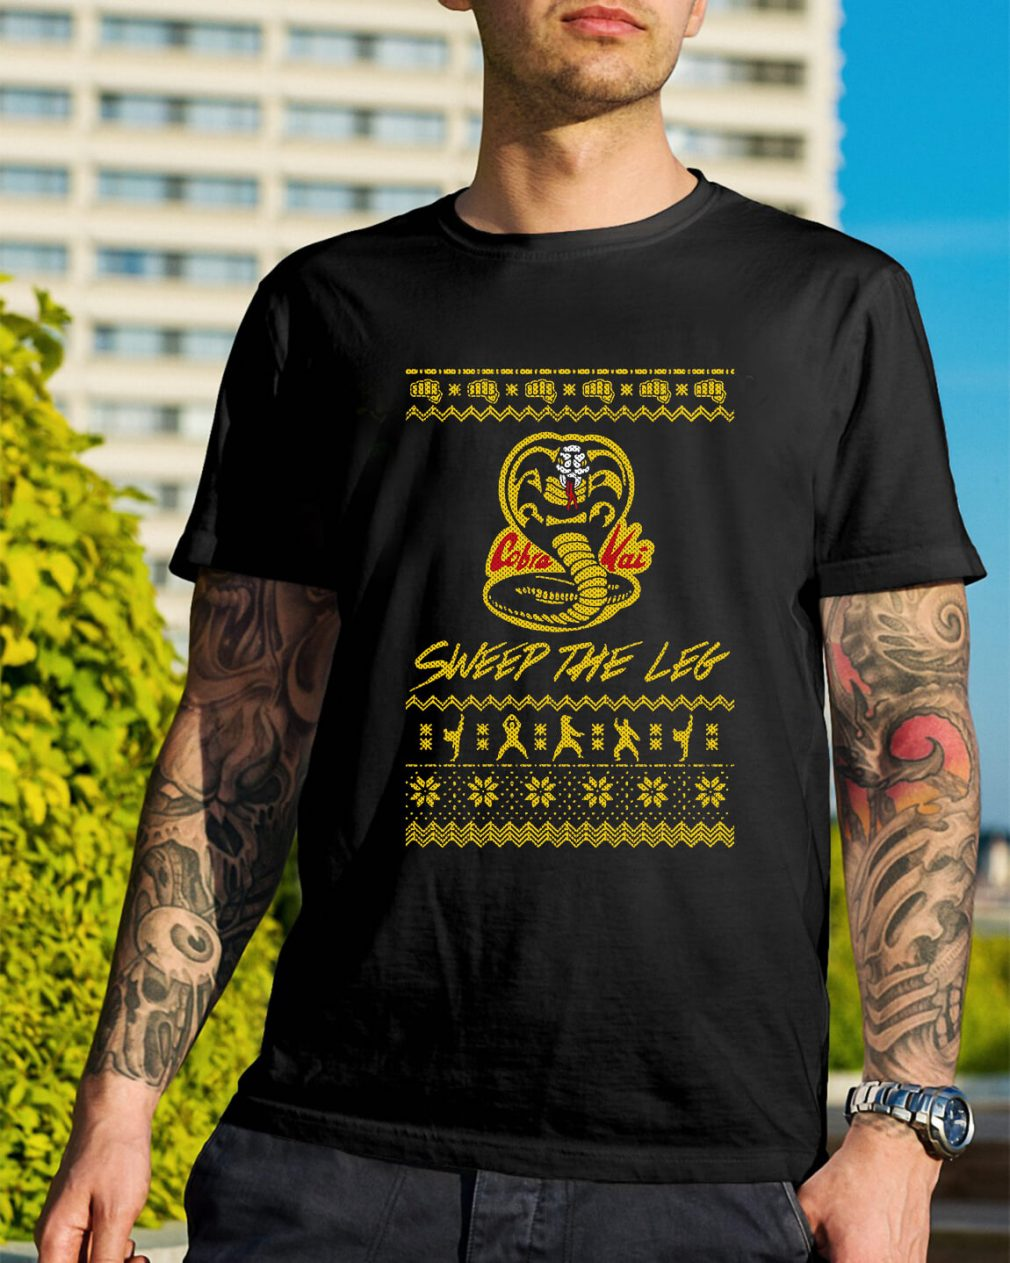 Christmas the Leg Karate Dojo Cobra Kai sweep the leg Guys Shirt